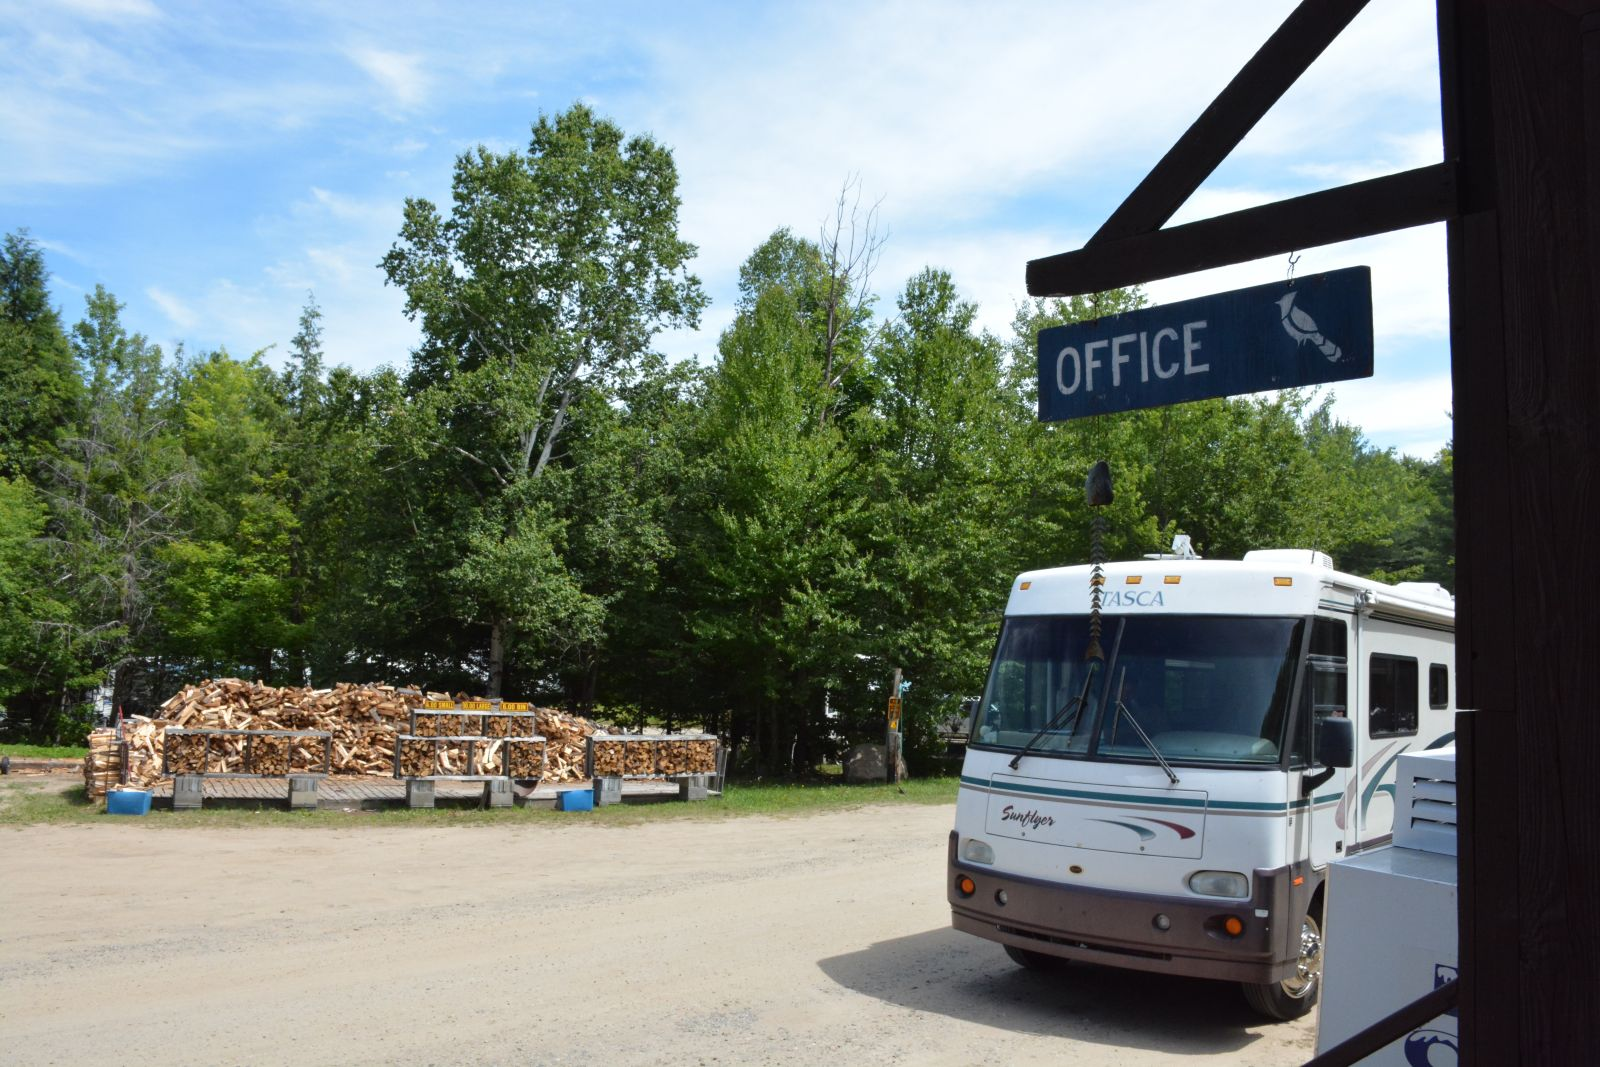 Campers stop by the Blue Jay Campsite office to check in for their stay at the Adirondack campground.